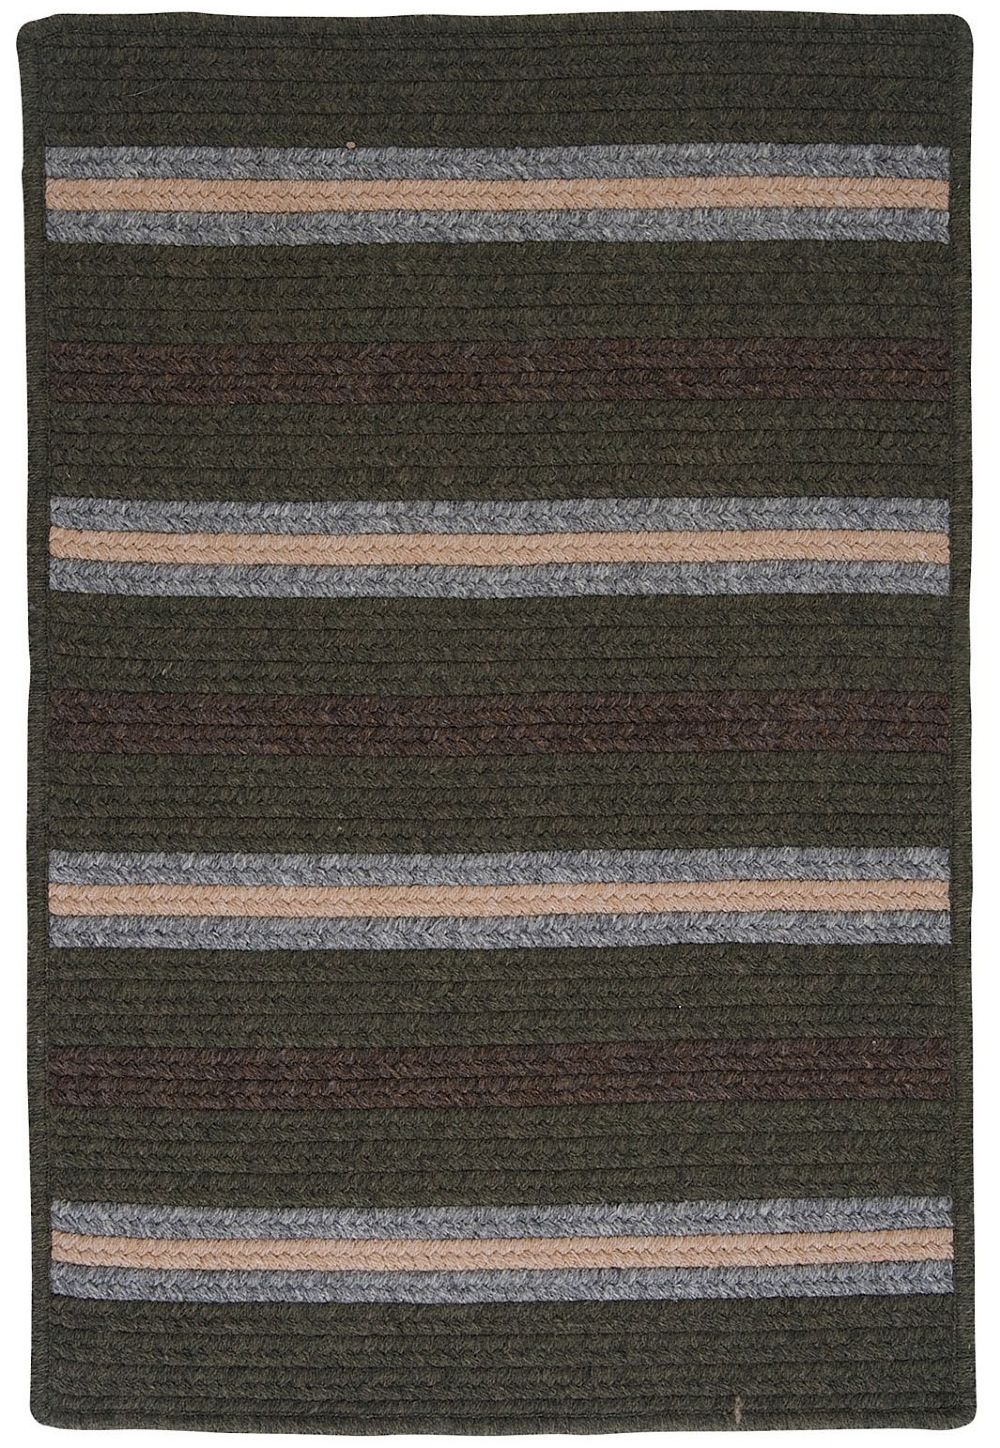 colonial mills salisbury braided area rug collection